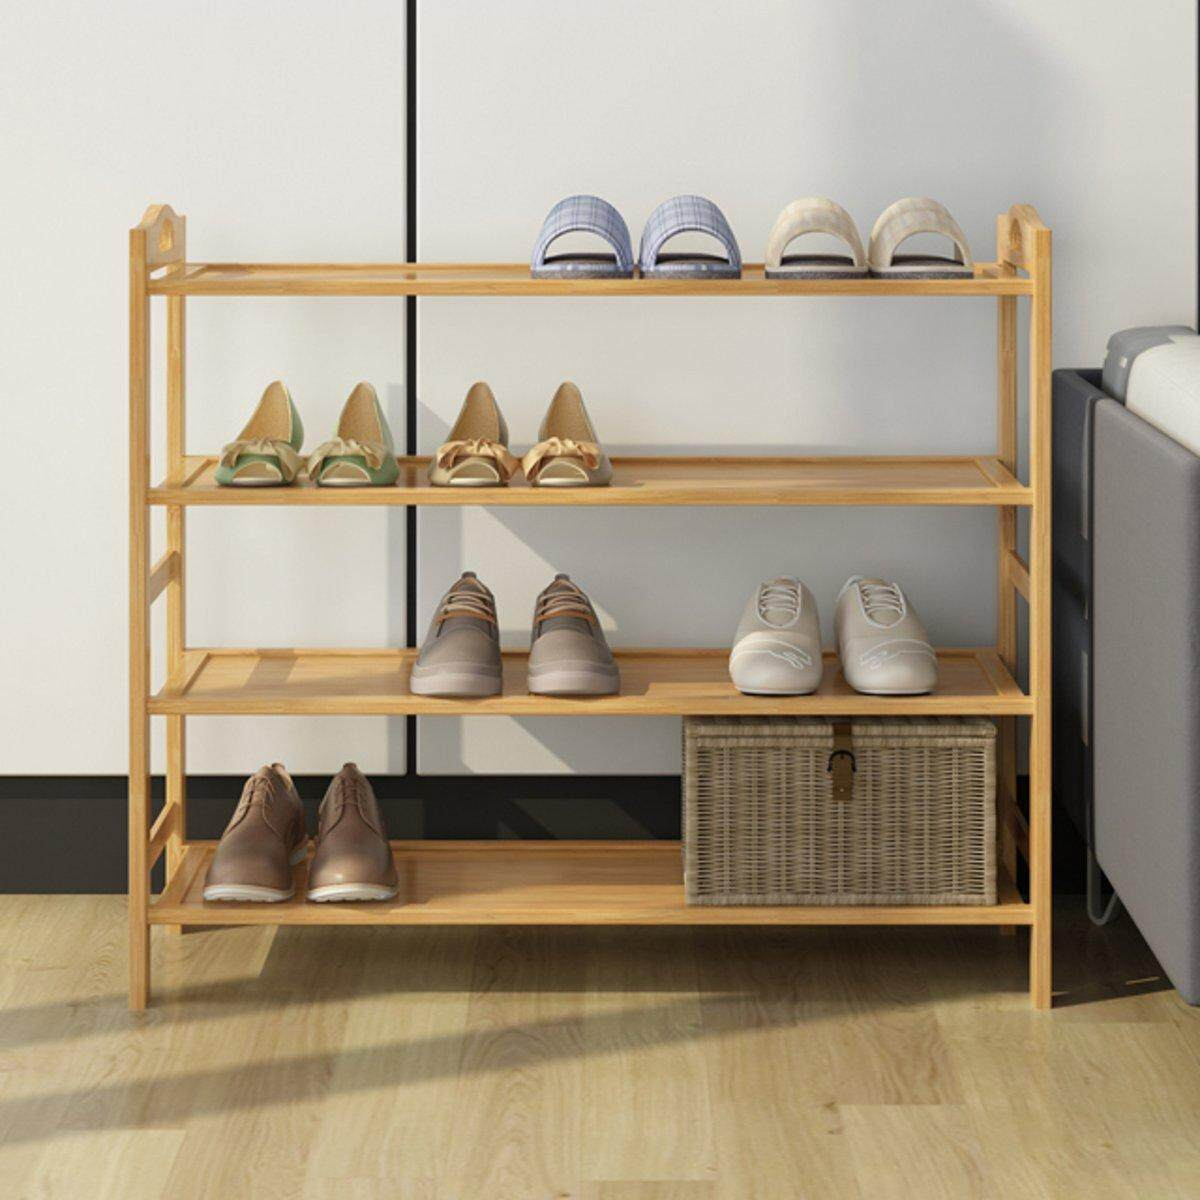 3 Tier MDF Shoe Rack Organiser Natural Bamboo Shoes Storage Unit Shelf Stand # 4 Layer